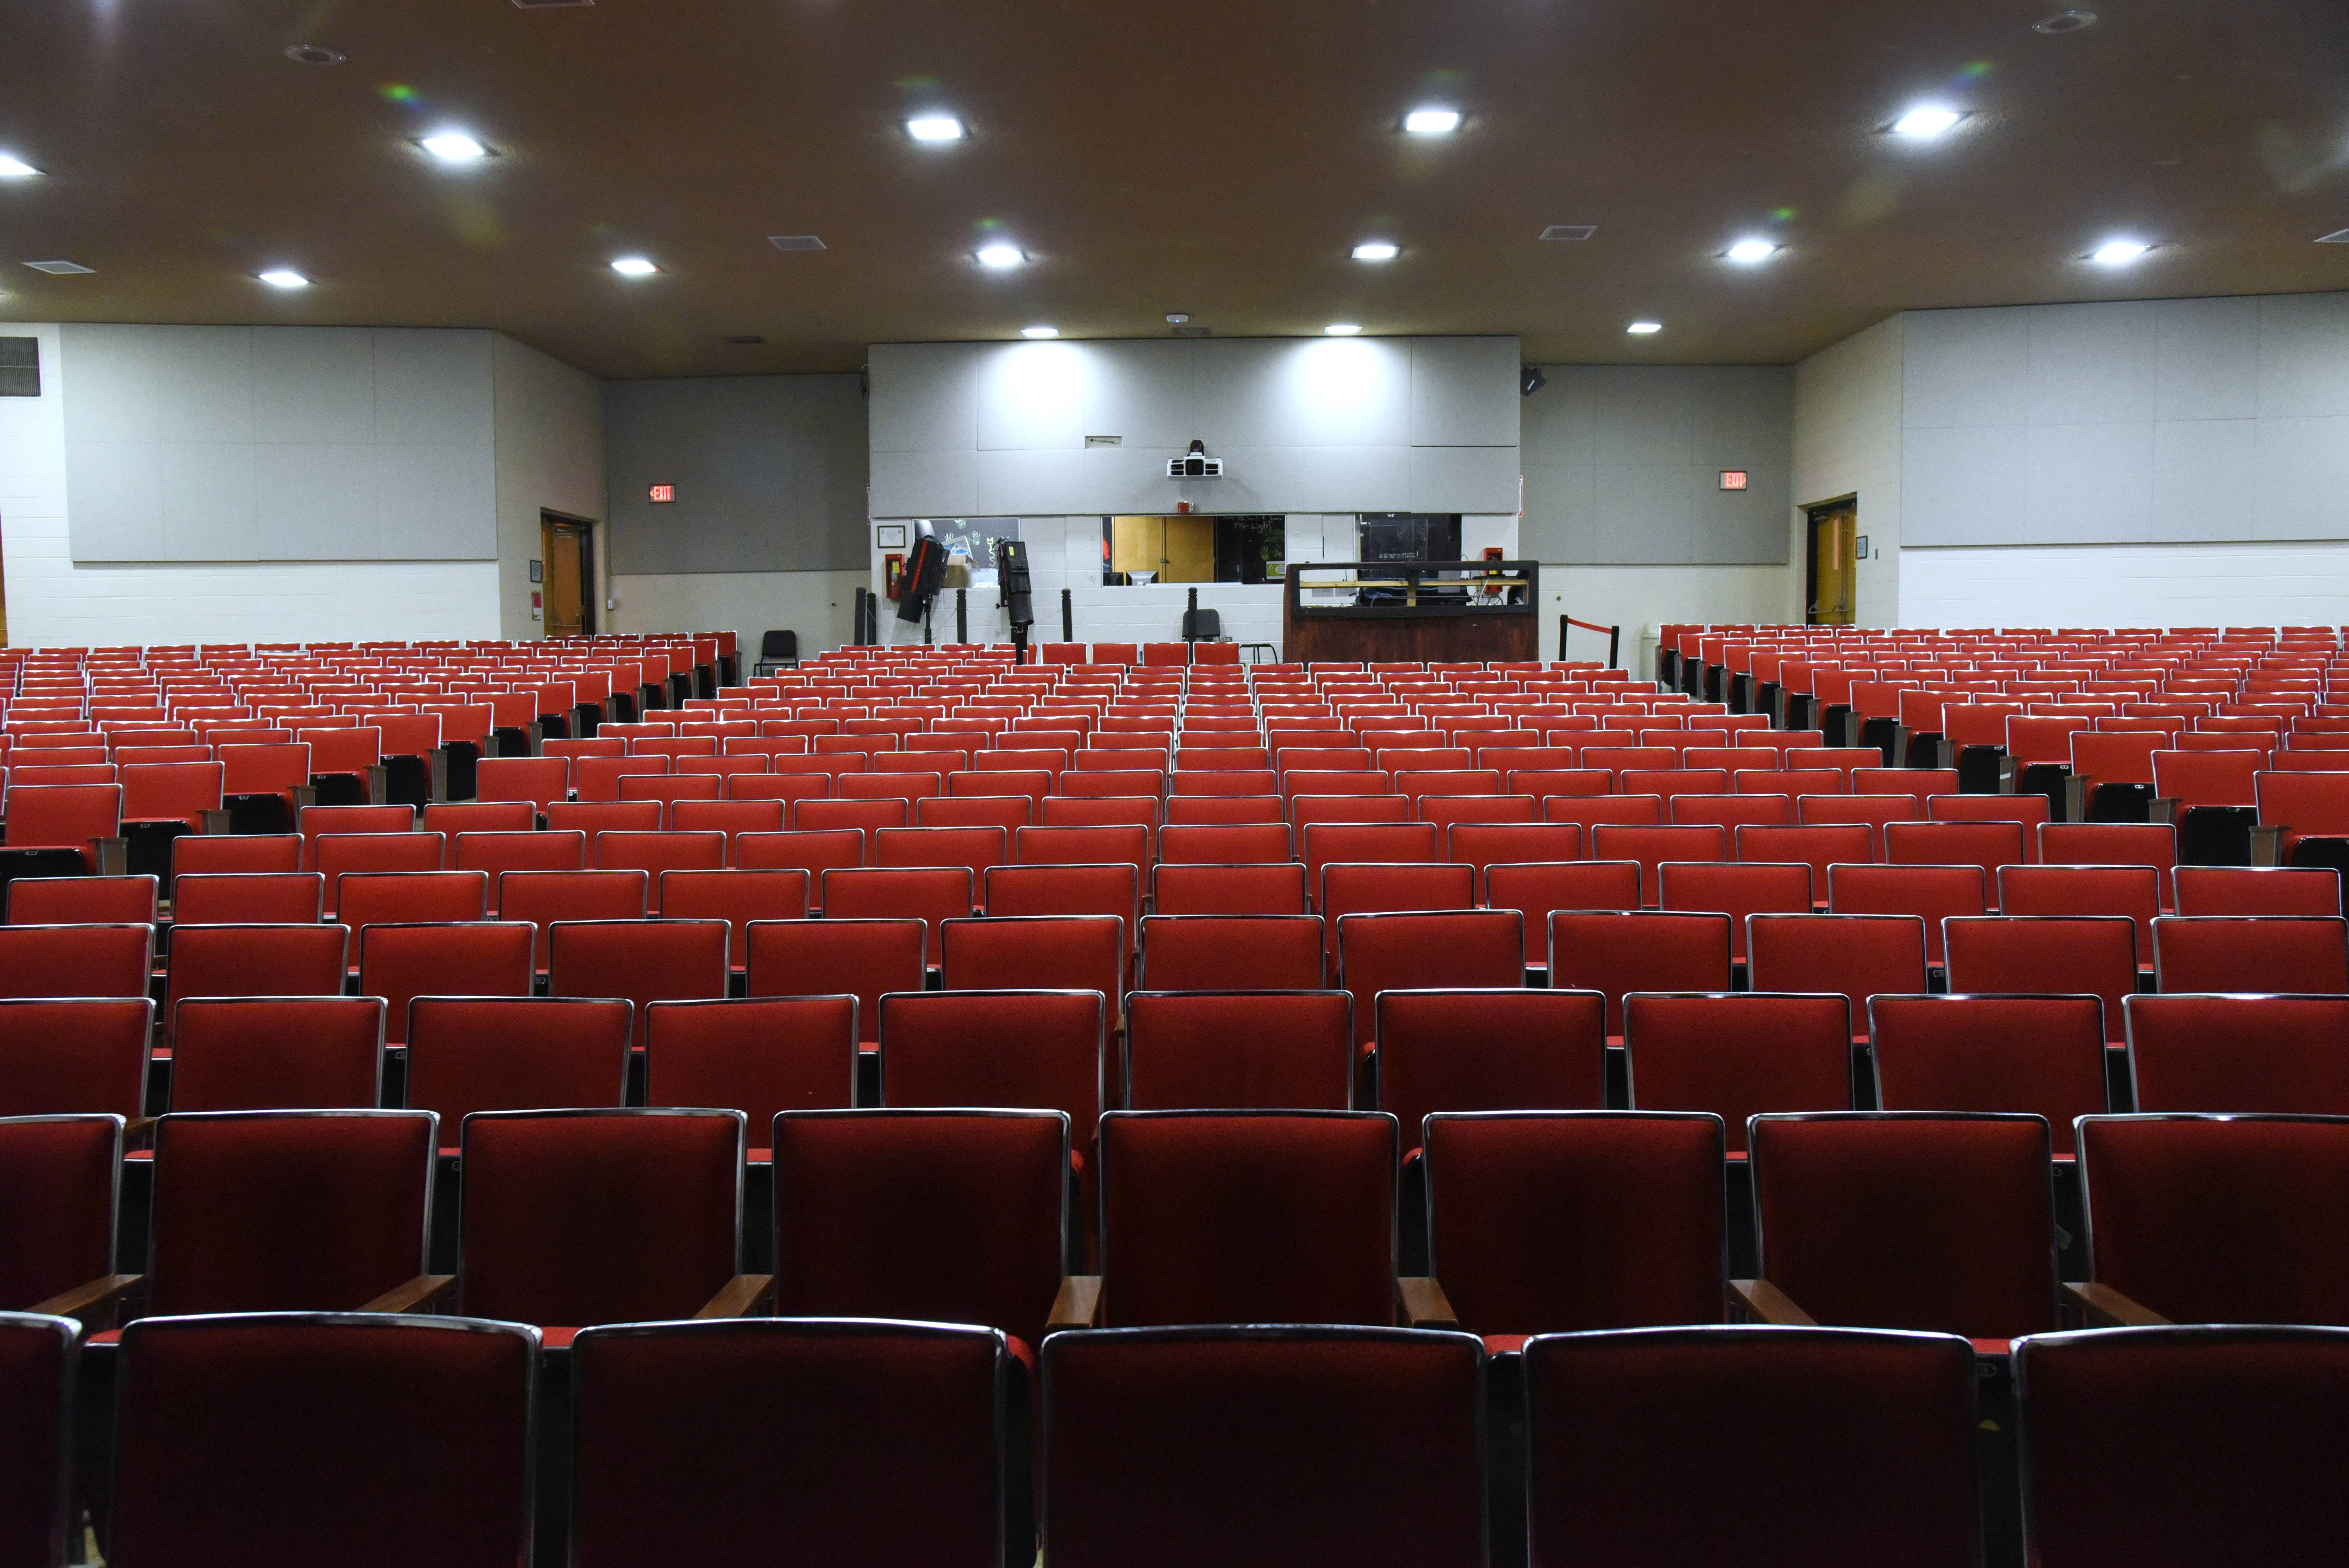 A new auditorium would be part of a facility improvement plan at Mundelein High School.